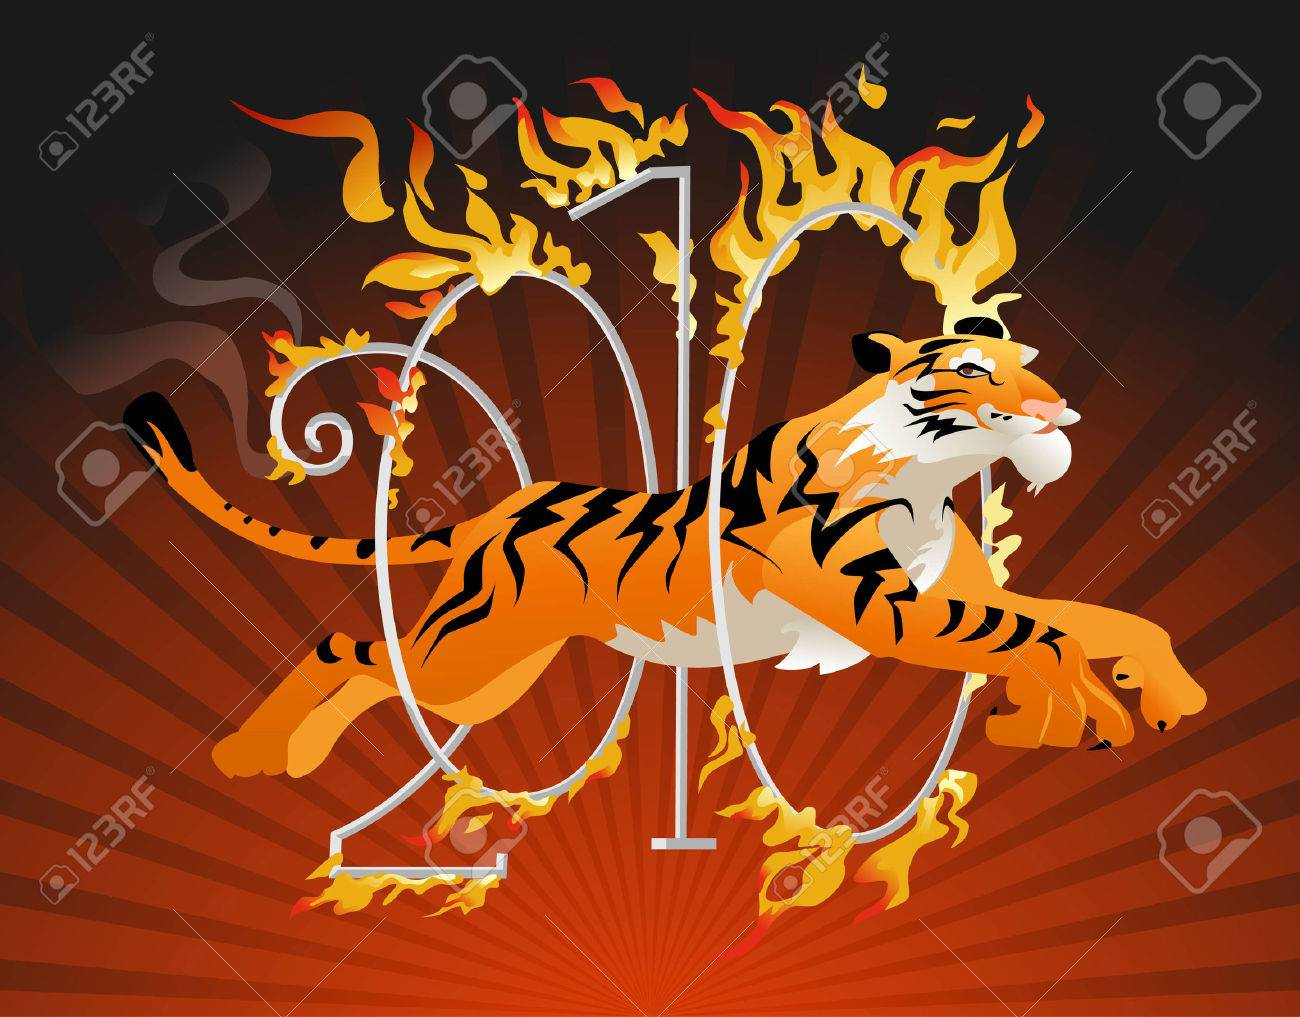 Tiger symbol of the year jumping through a hoop of fire Stock Vector - 5860470